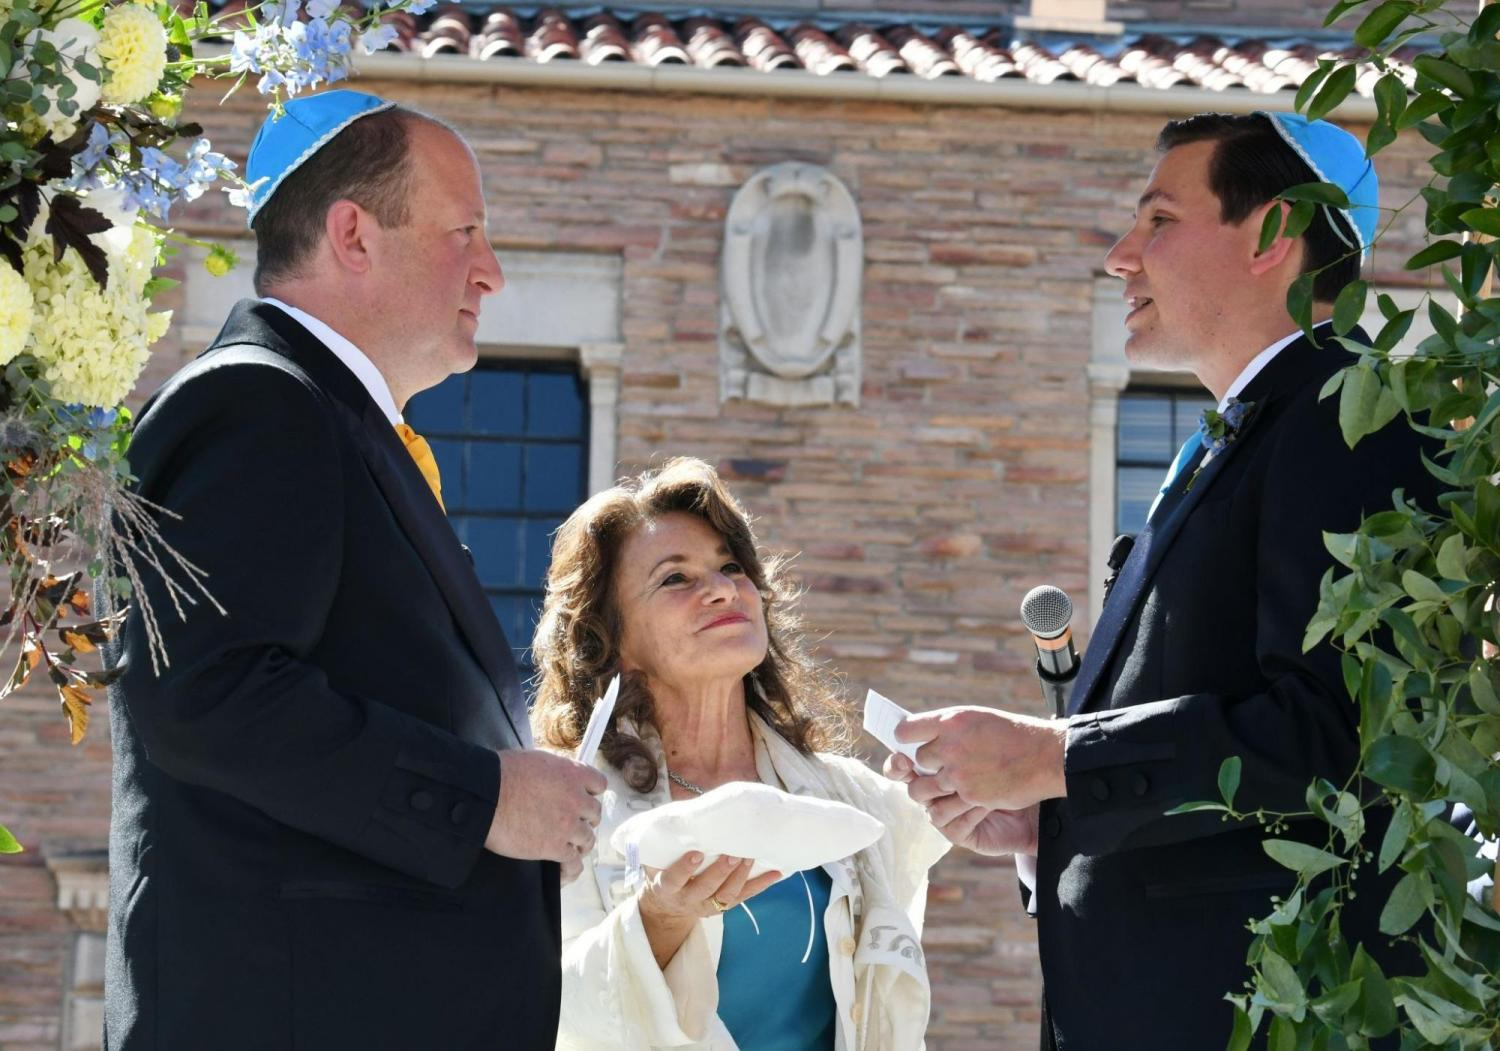 Jared Polis and Marlon Reis face each other as an officiant looks on.